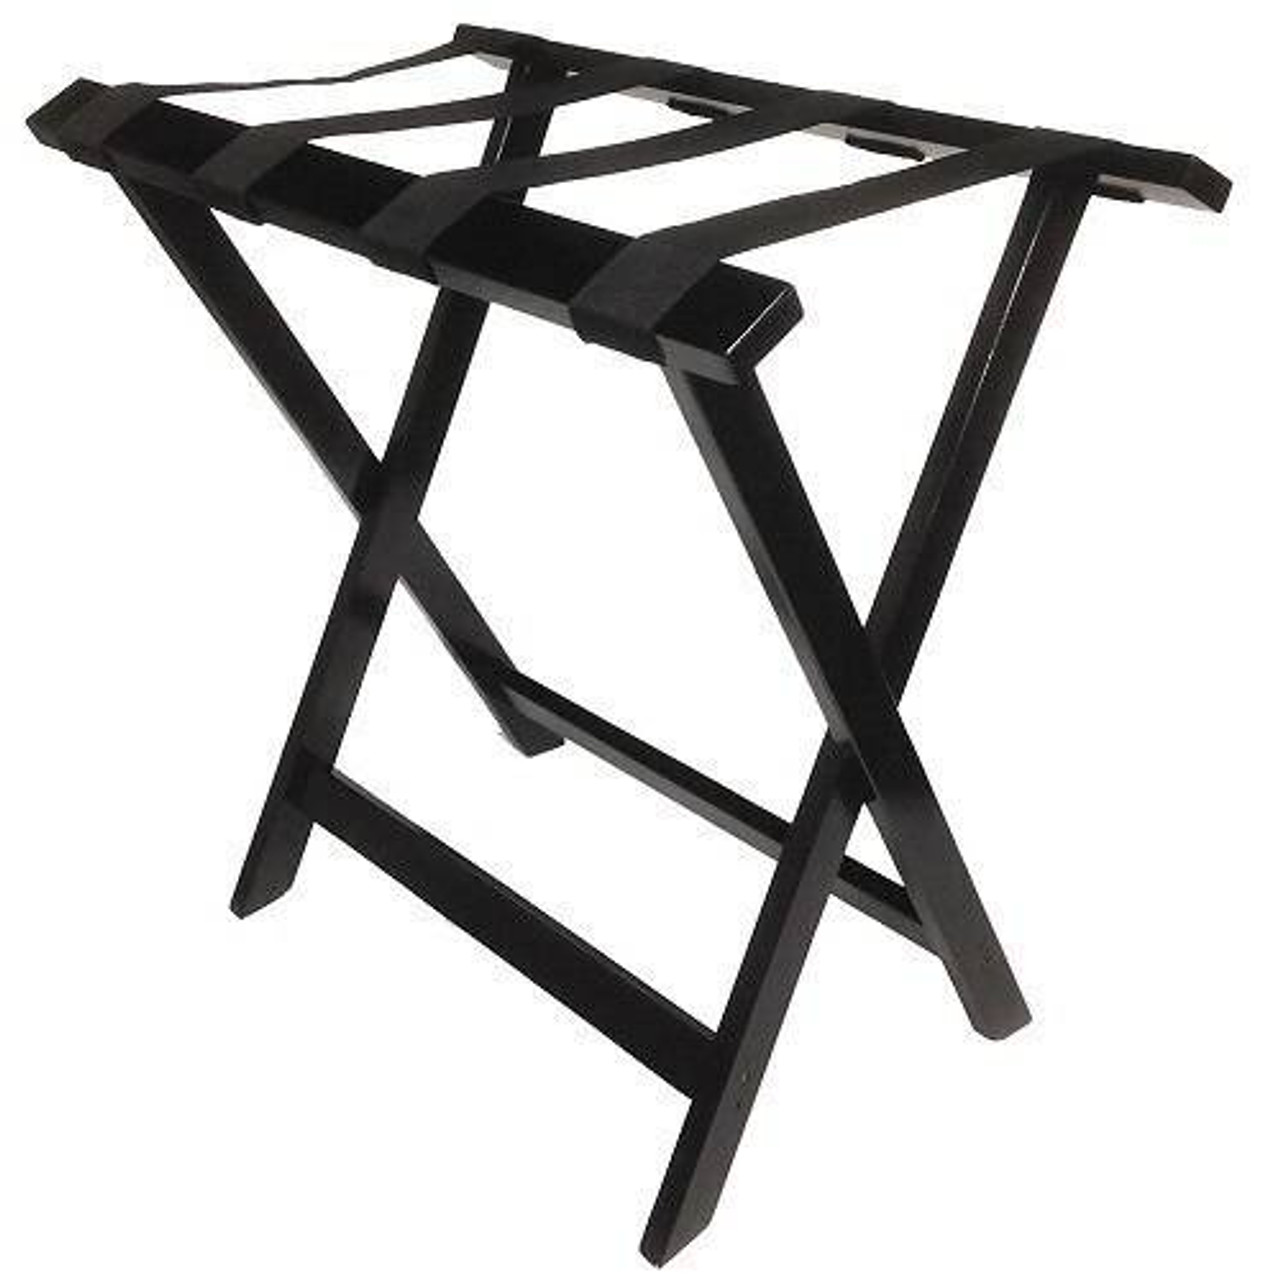 HOSPITALITY 1 SOURCE HOSPITALITY 1 SOURCE or TALL WOODEN LUGGAGE RACK or BLACK STRAPS or ESPRESSO FINISH or 4 PER CASE